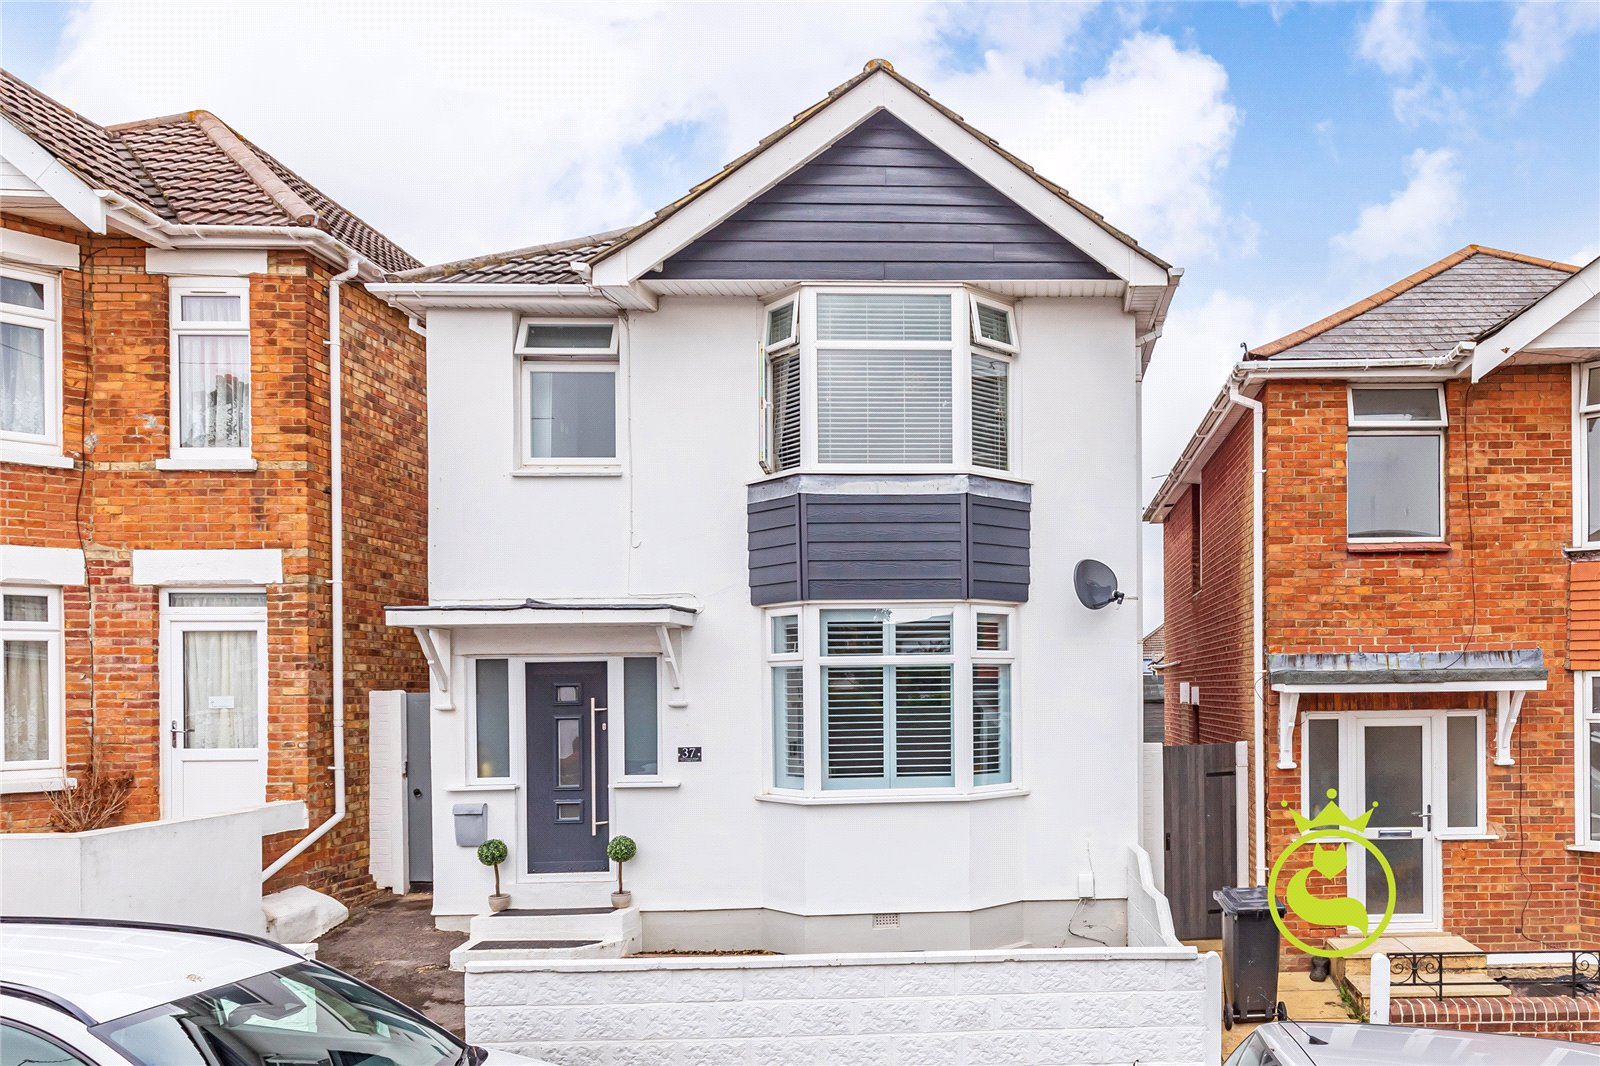 3 bed house for sale in Cheltenham Road, Parkstone, BH12